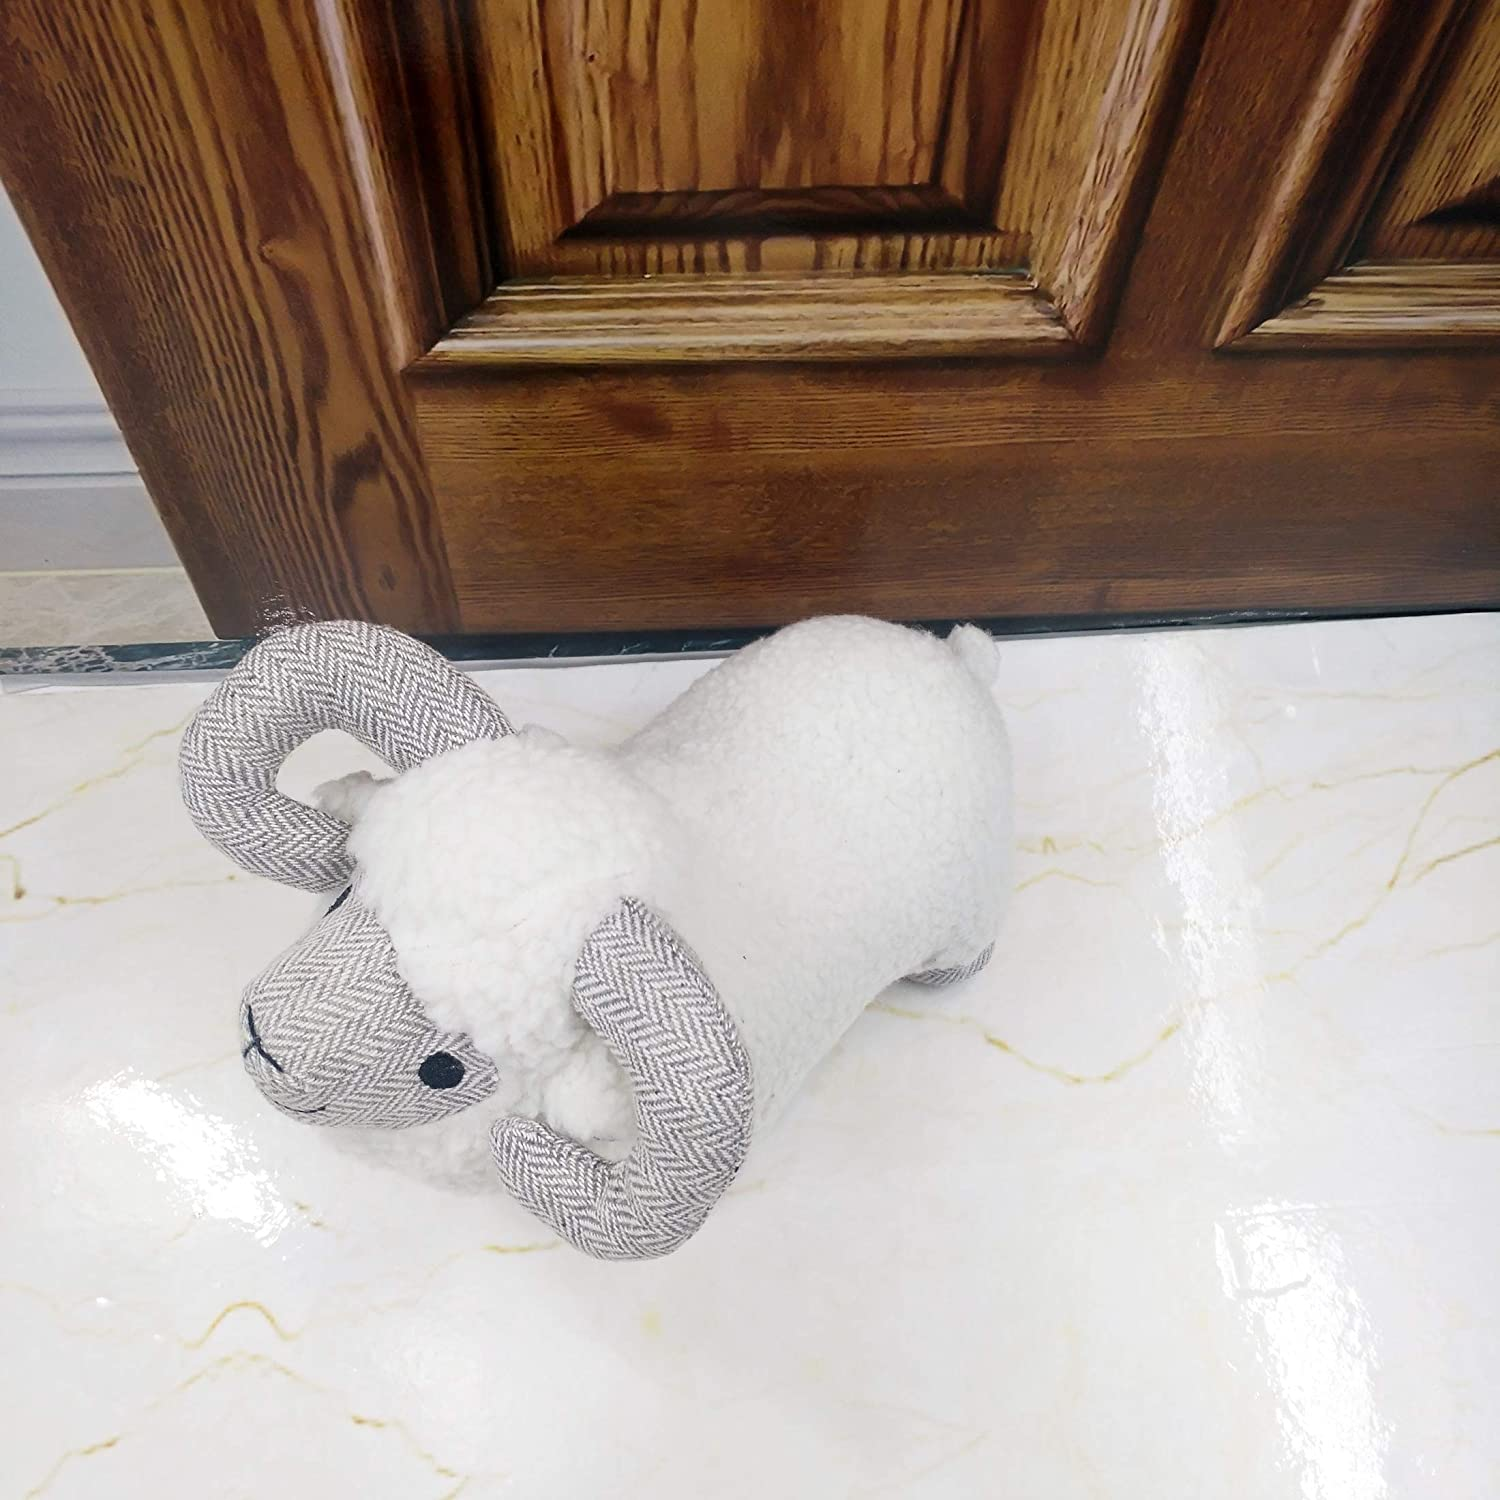 Fabric Animal Door Stopper Decorative Doorstops Goat Lover Gifts Book Stopper Wall Protectors Anti Collision